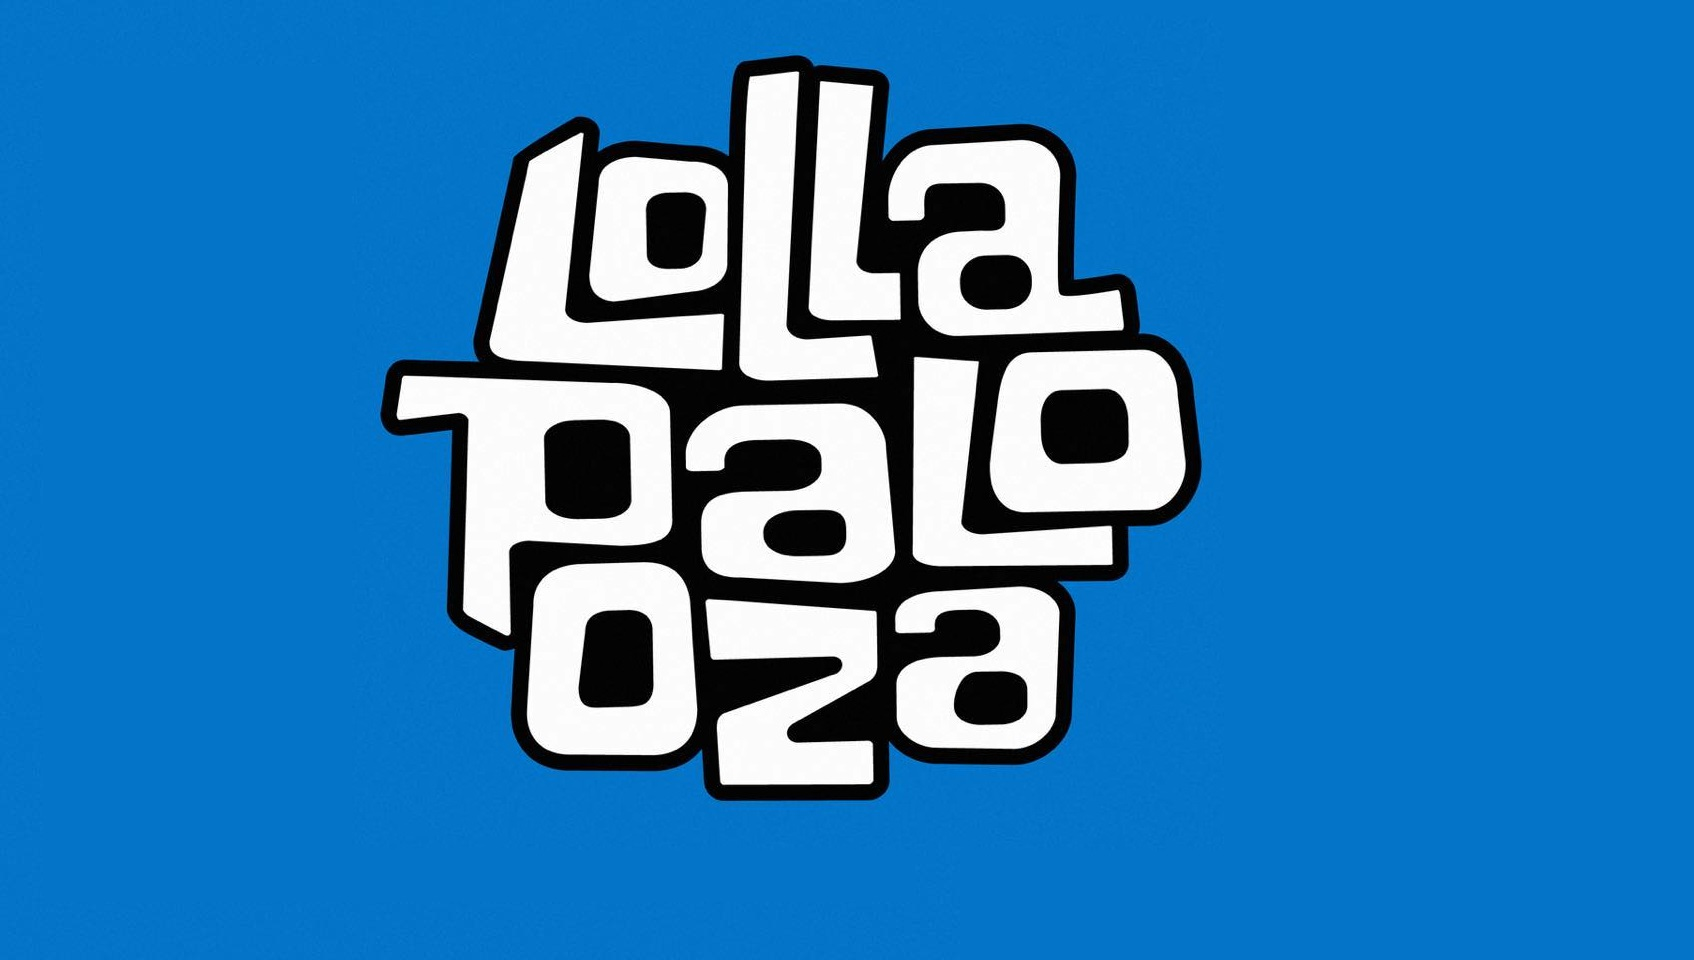 Lollapalooza title banner text festival music